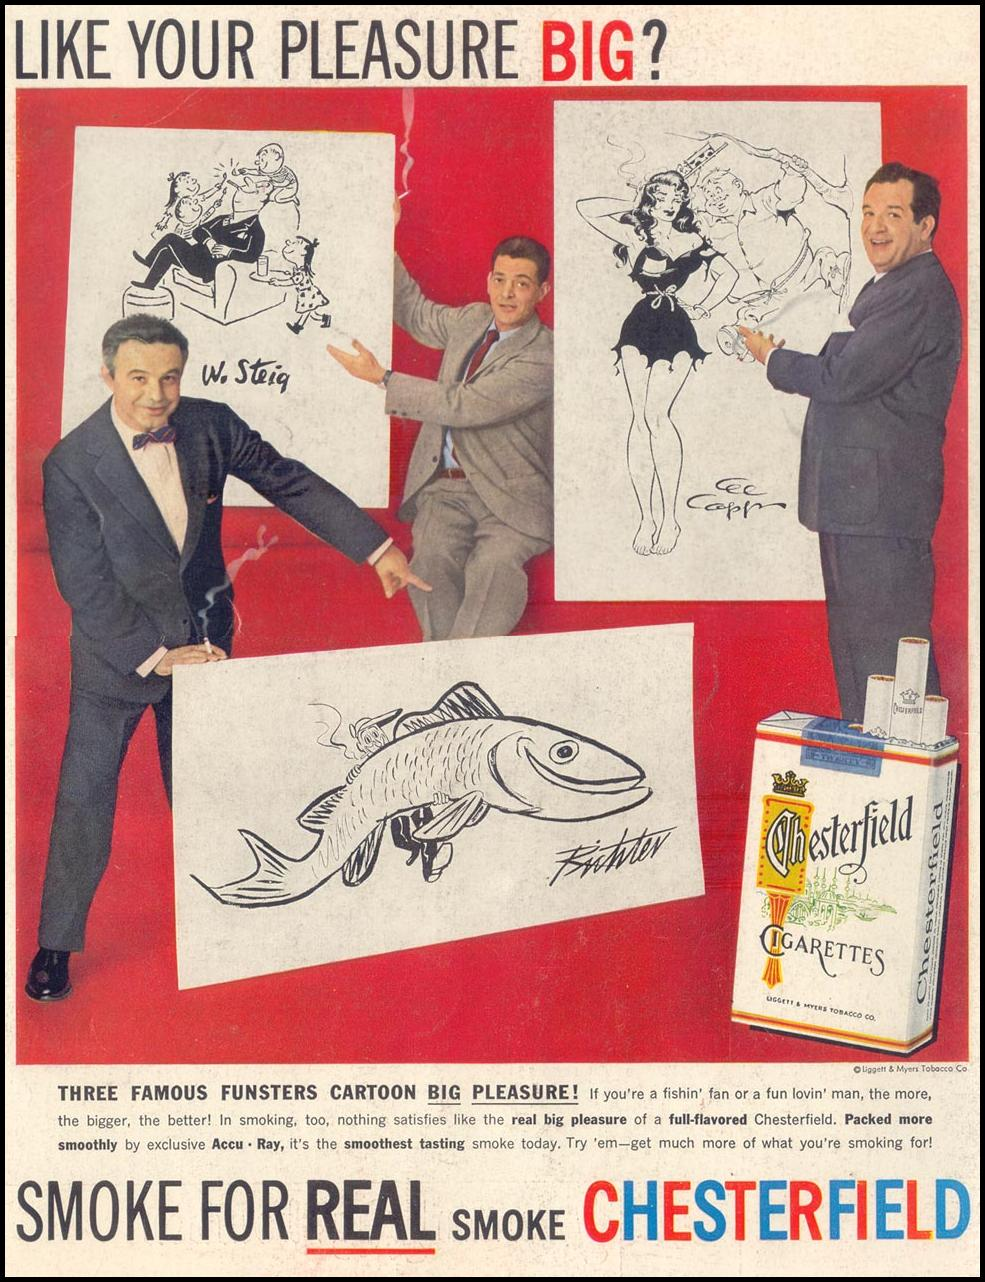 CHESTERFIELD CIGARETTES LIFE 03/18/1957 BACK COVER